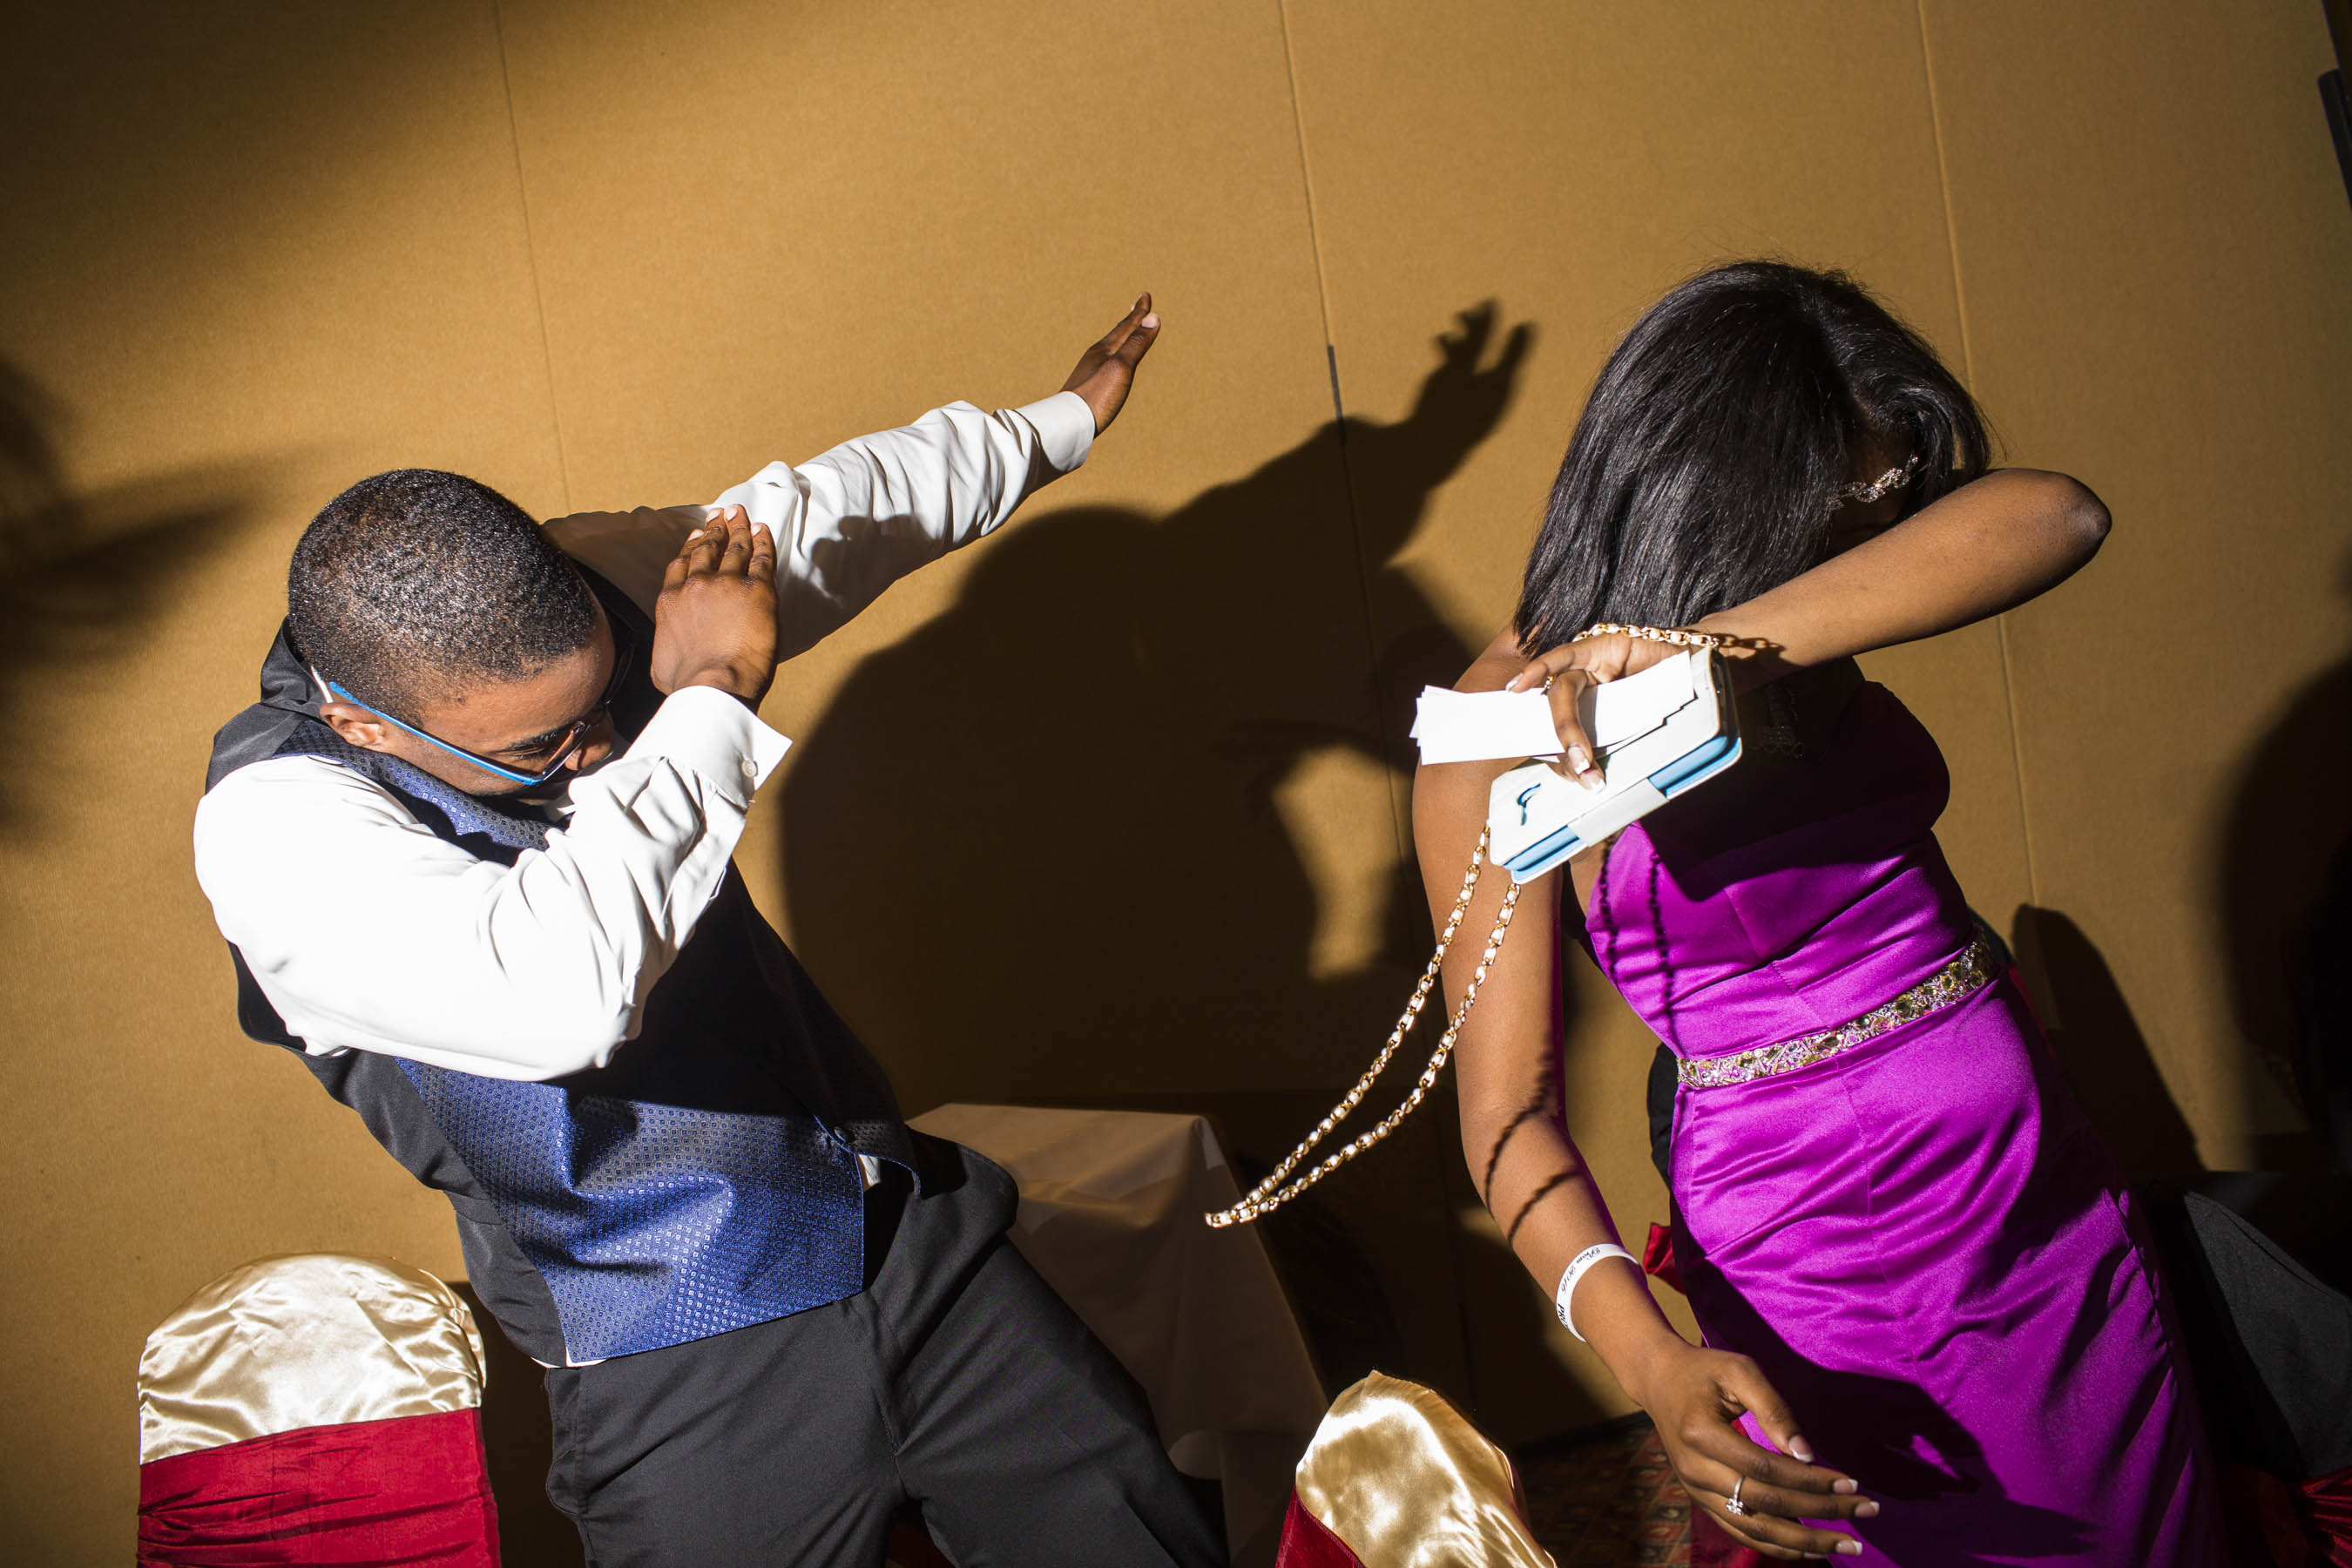 """Unidentified students """"dab"""" during the Northestern High School prom on Saturday, May 21, 2016 in Flint, Michigan."""